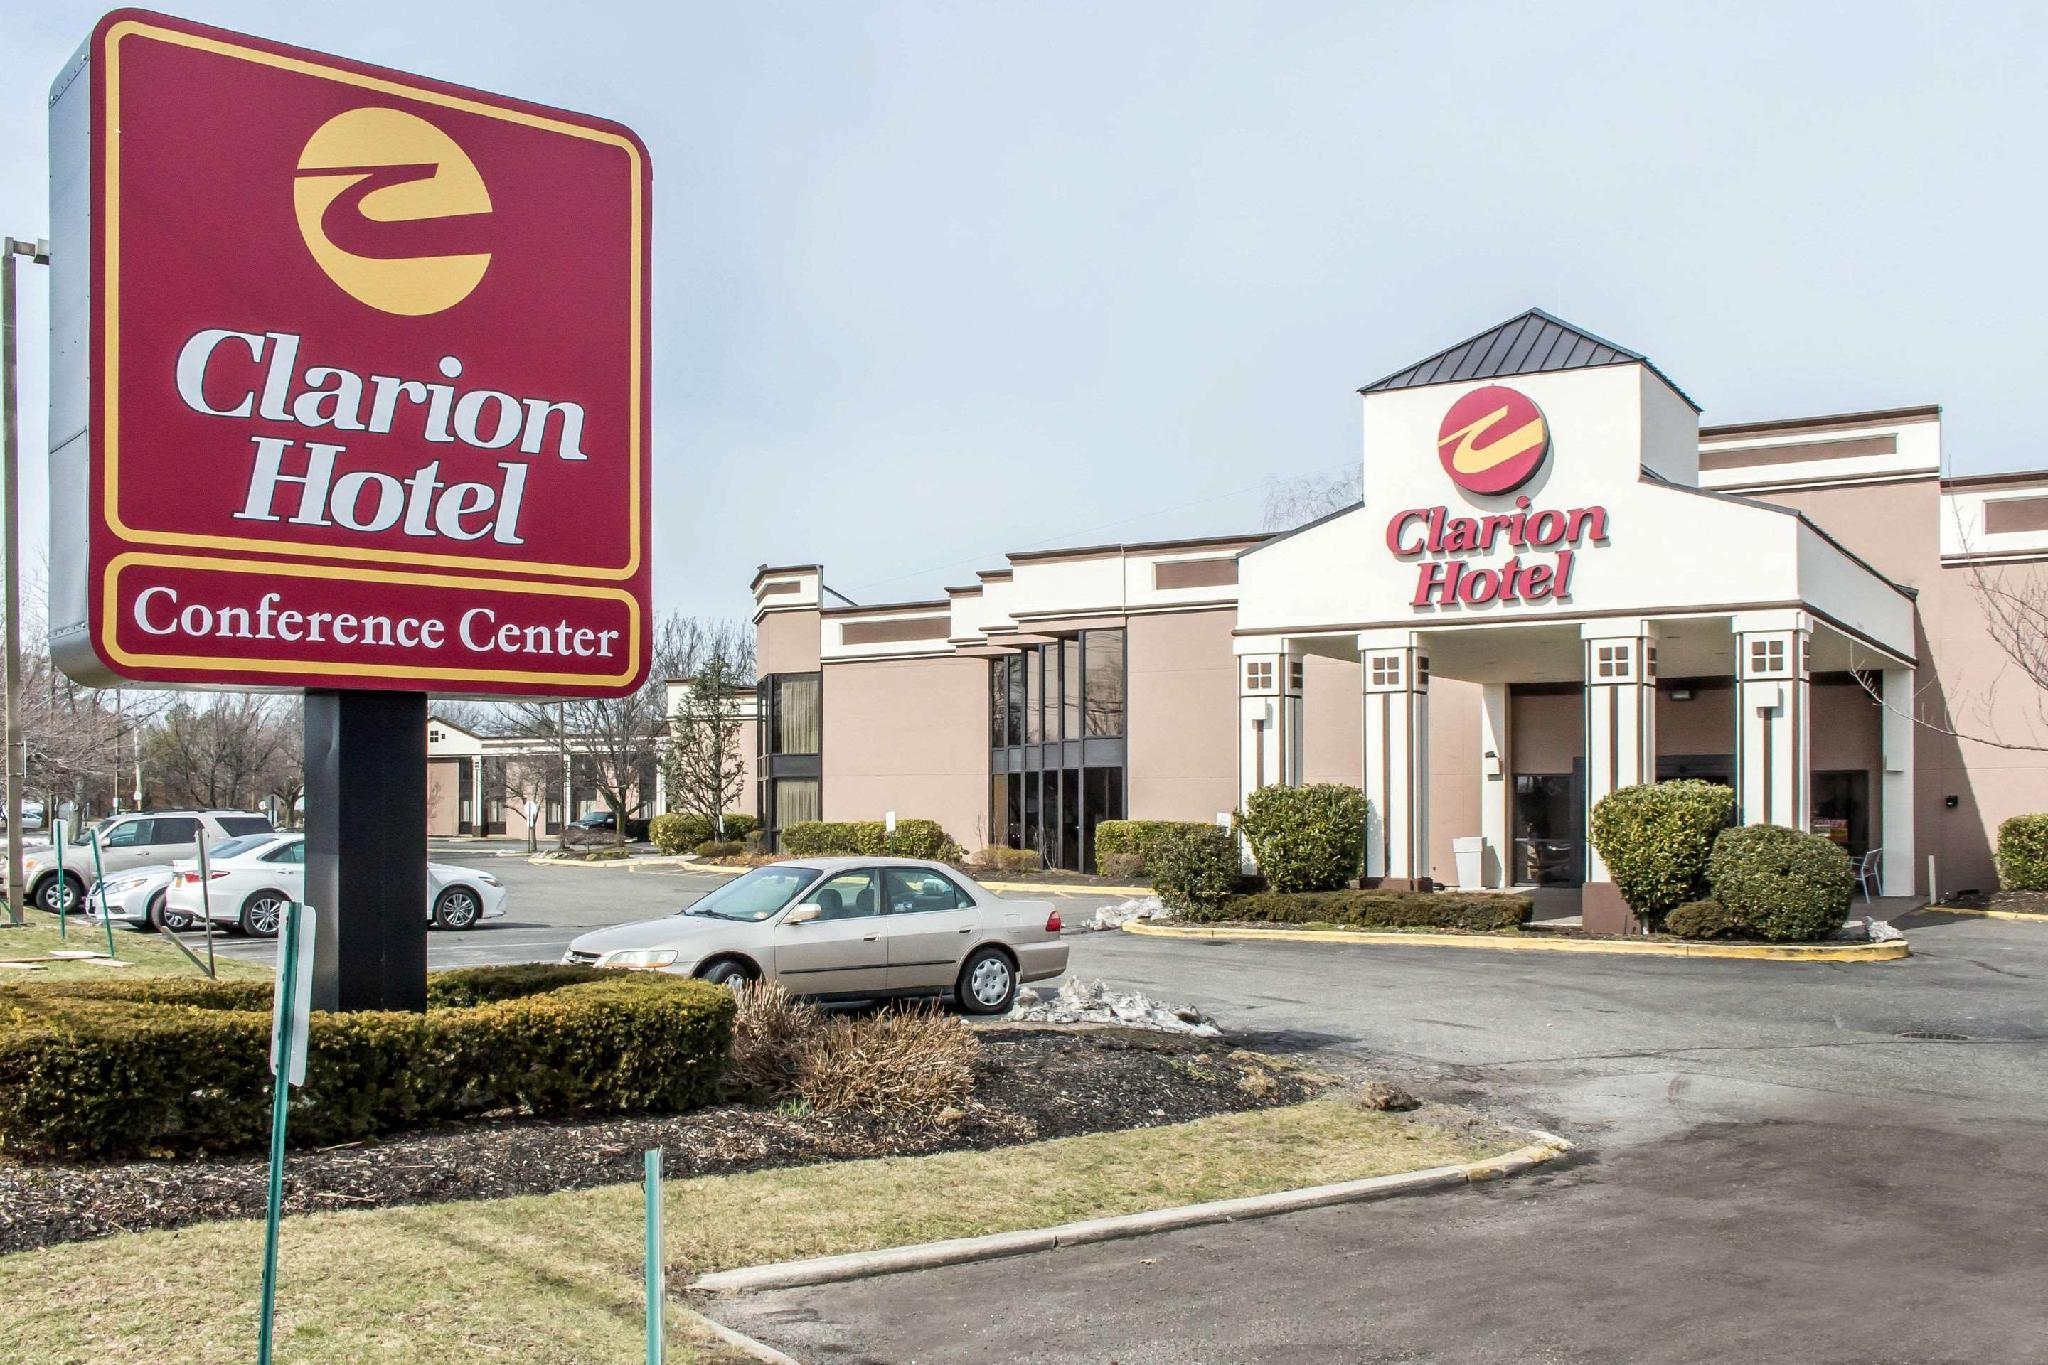 Hotels Review: Clarion Hotel and Conference Center Ronkonkoma – Pictures, Room Prices & Deals